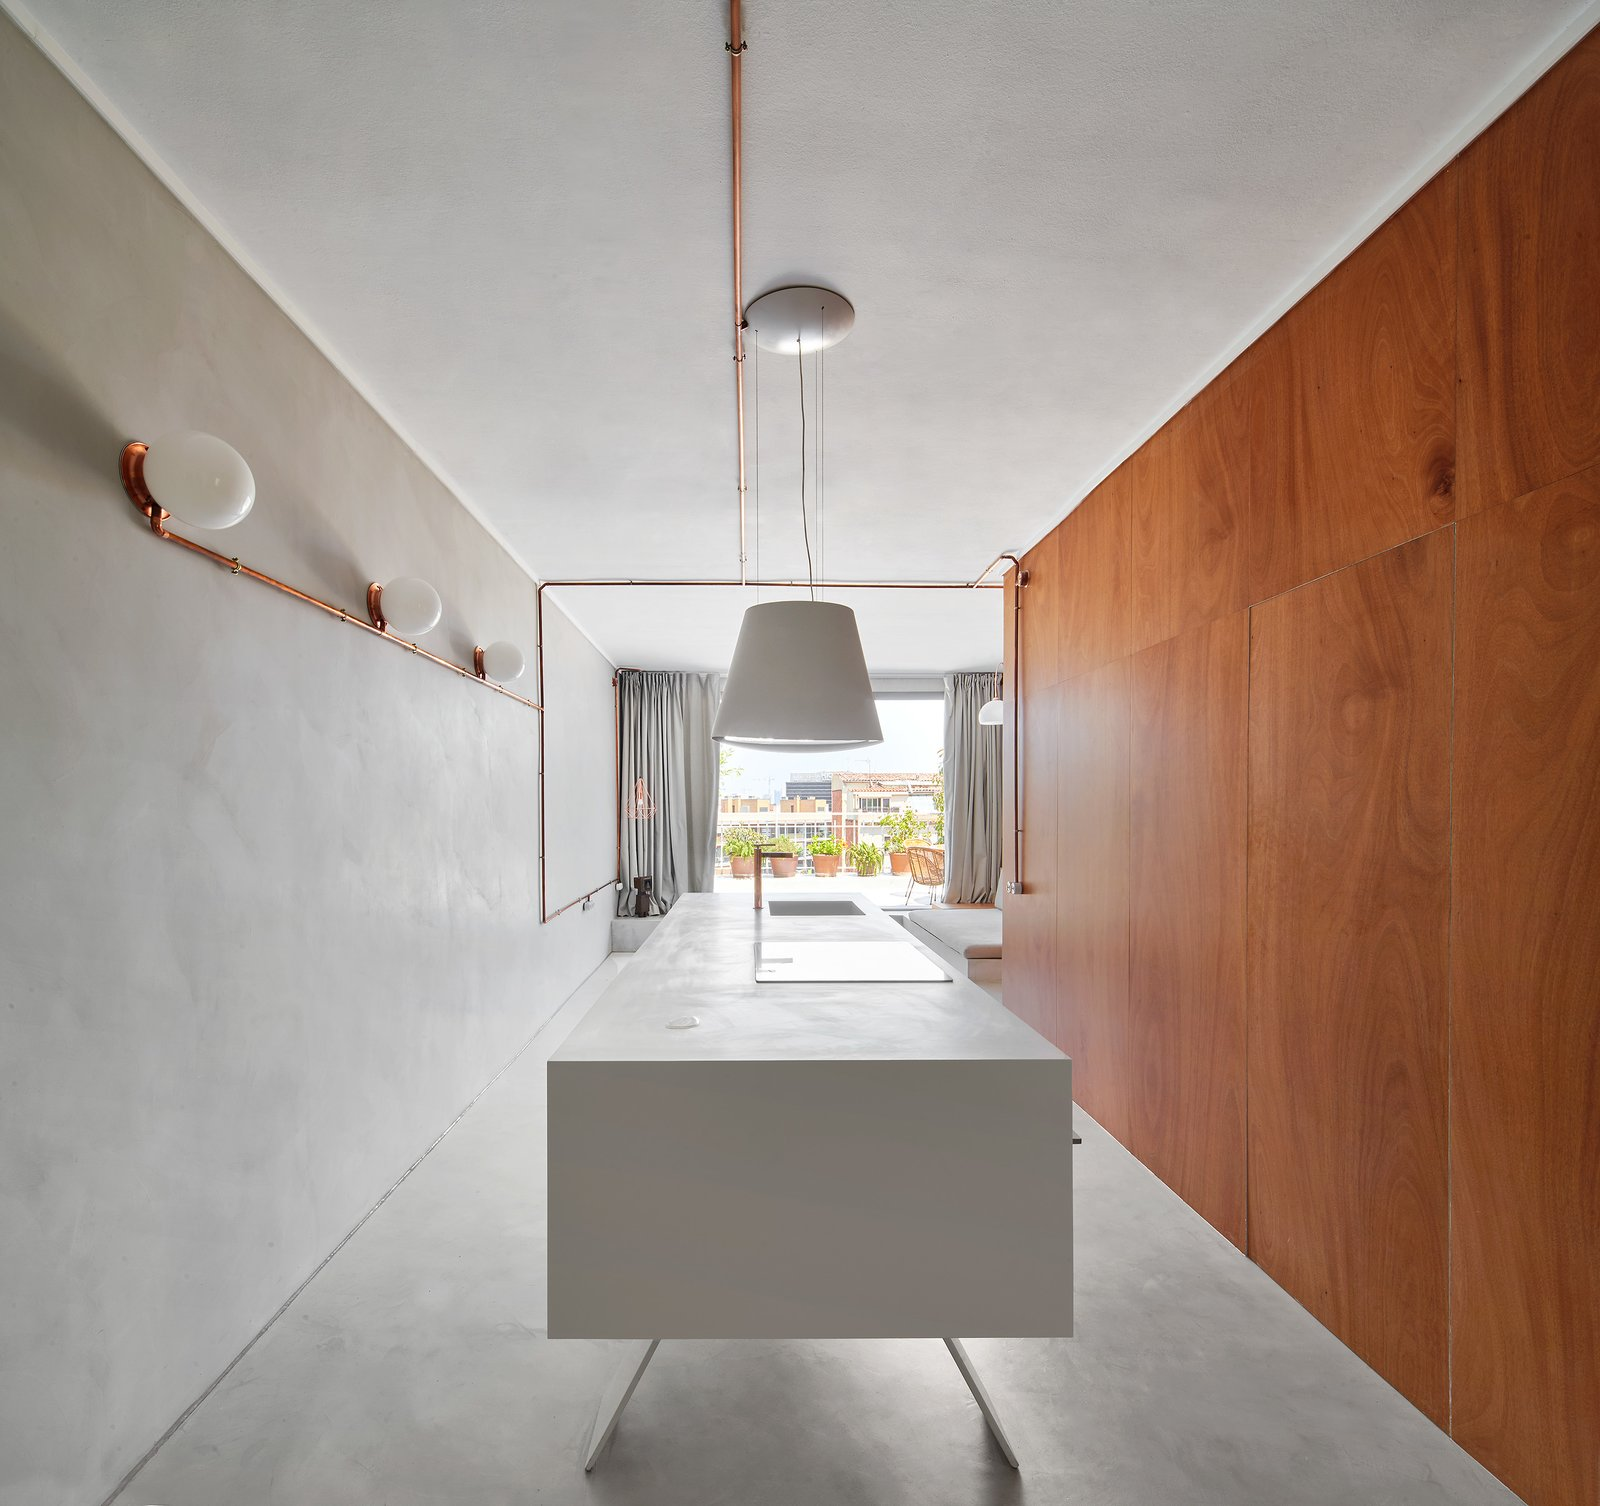 Kitchen, Wall, Refrigerator, Ceiling, White, Concrete, Drop In, and Engineered Quartz Kitchen volume along  Laundry/ WC wooden volume  Kitchen Concrete Refrigerator Wall Photos from The Marina Apartment